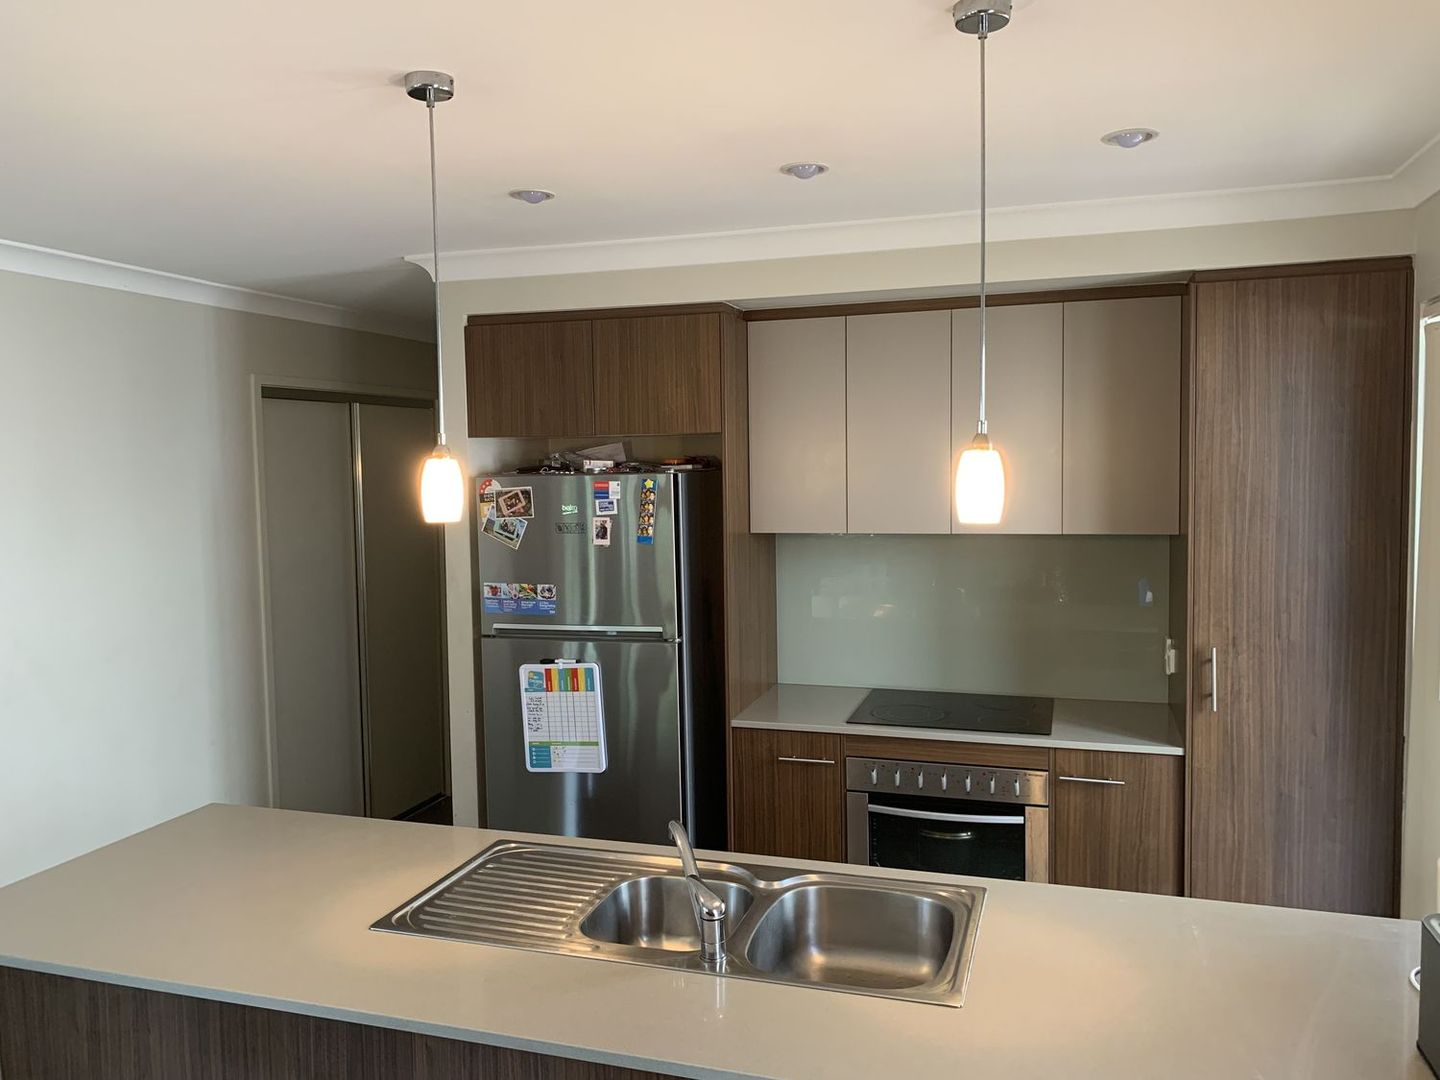 39/6-8 Macquarie Way, Browns Plains QLD 4118, Image 2